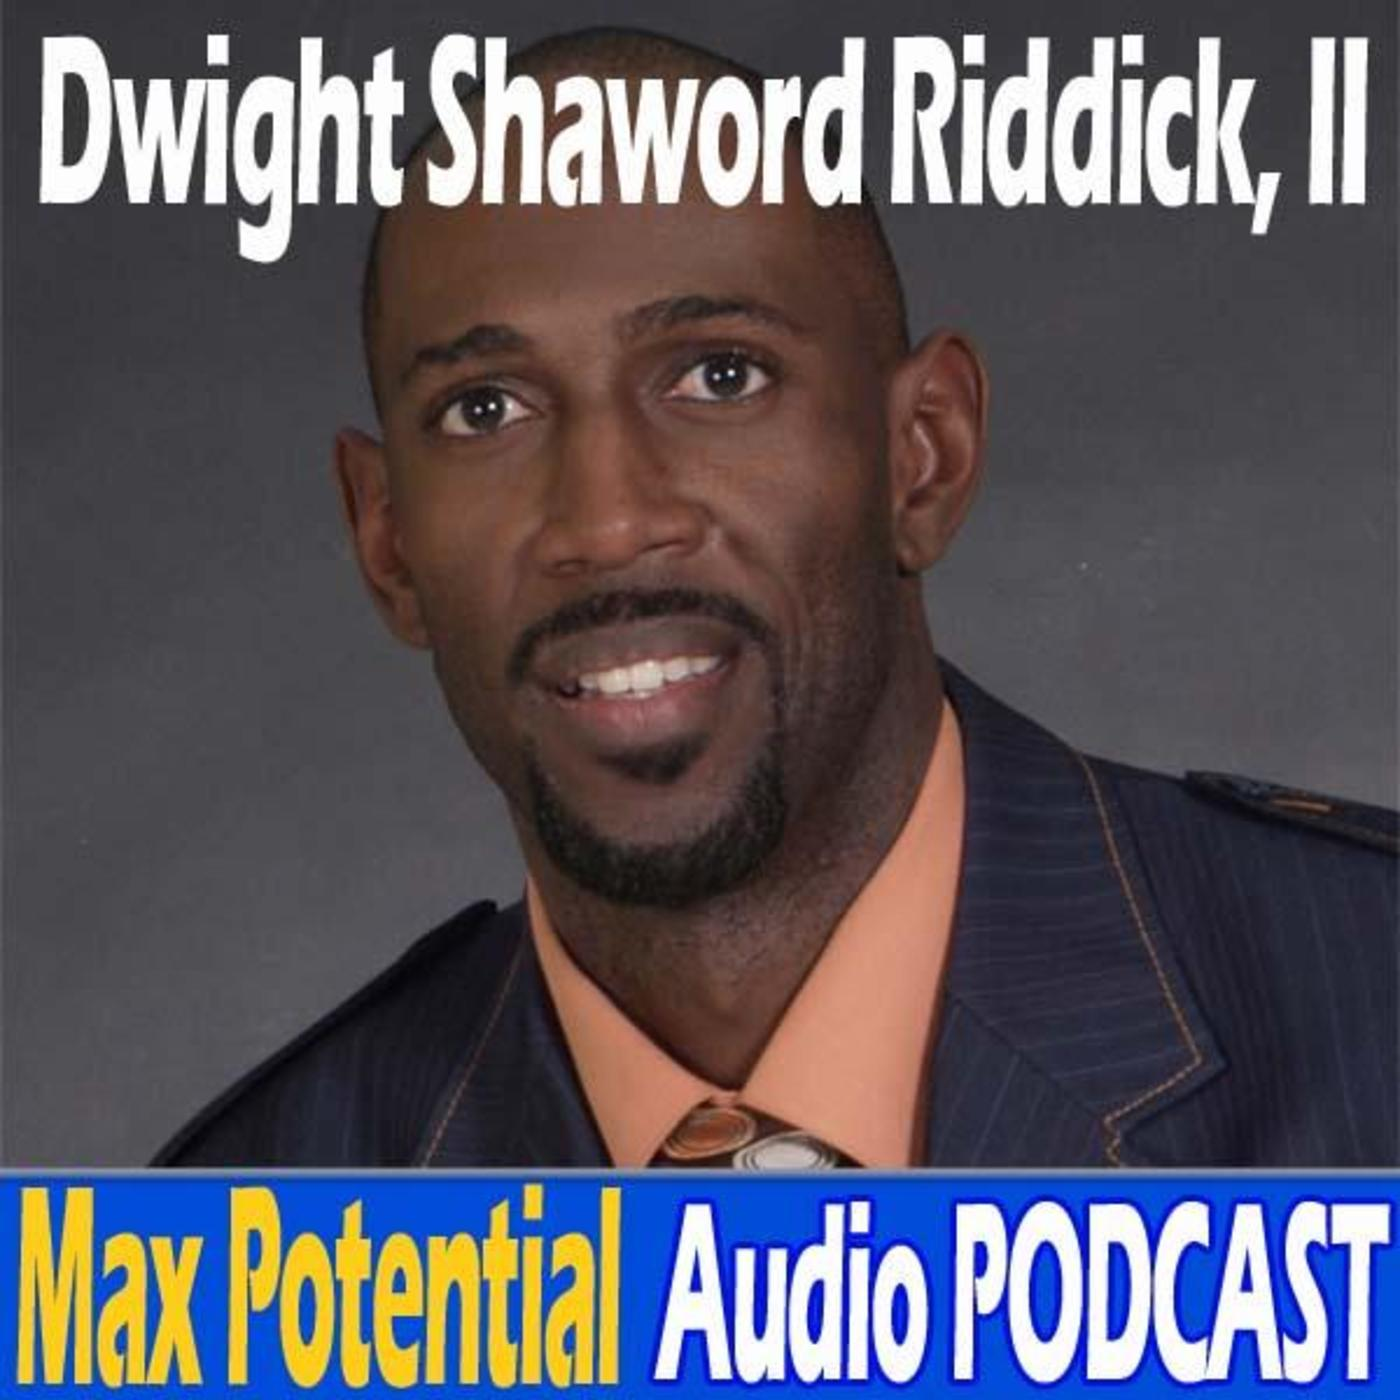 Dwight Shawrod Riddick (CMI Leadership)